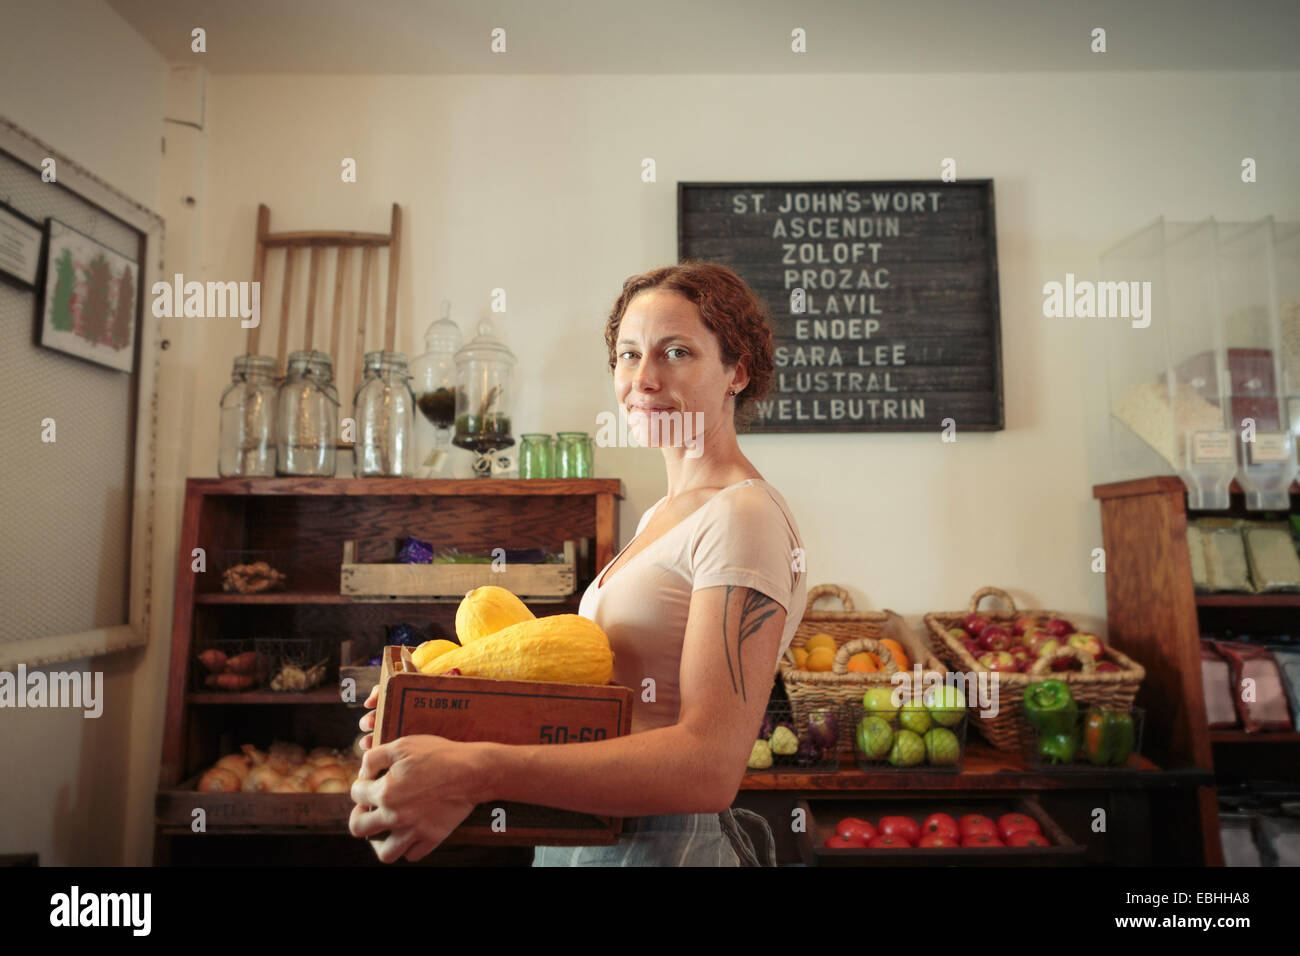 Portrait of female shop assistant carrying fruit and veg crate in country store - Stock Image